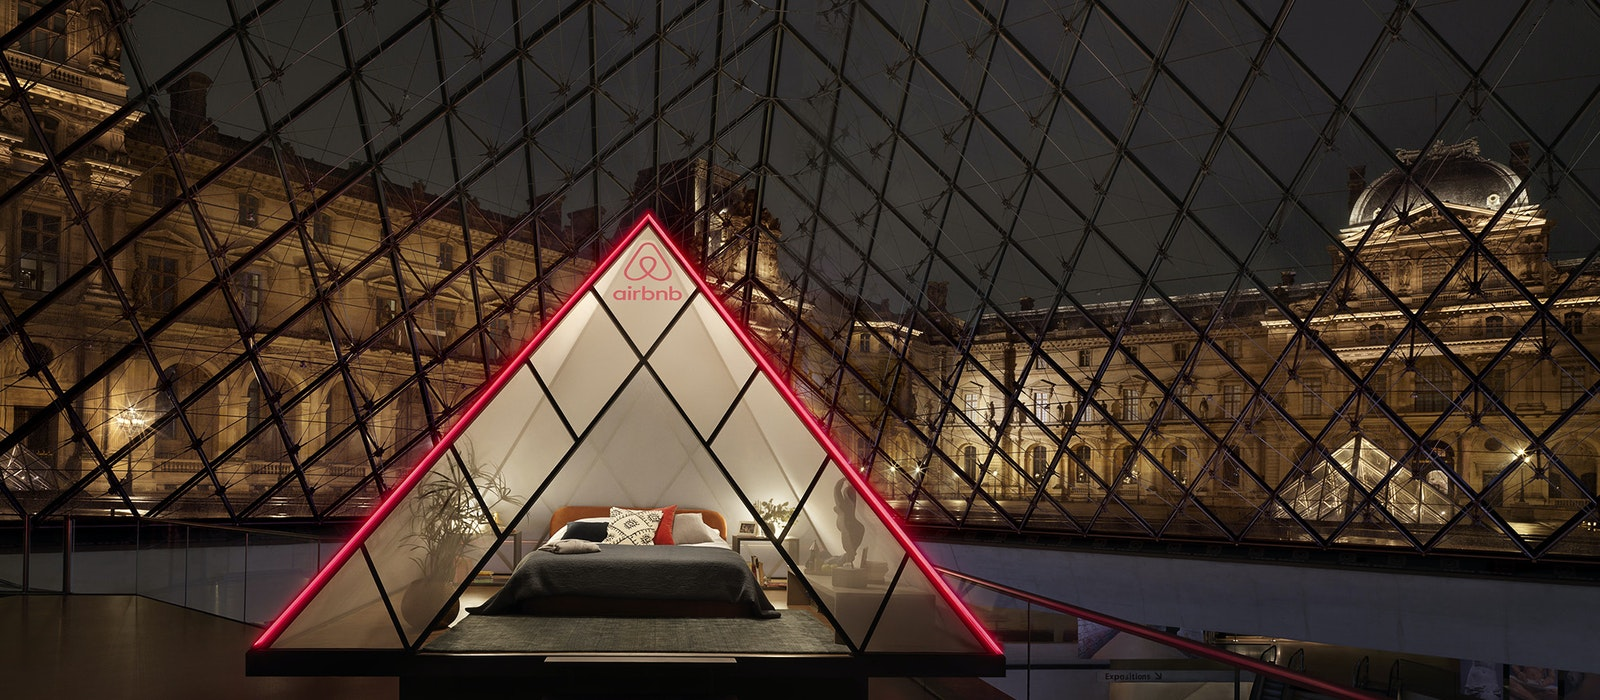 The bedroom for the night at the museum is set inside a mini version of the Louvre's famous glass pyramid.